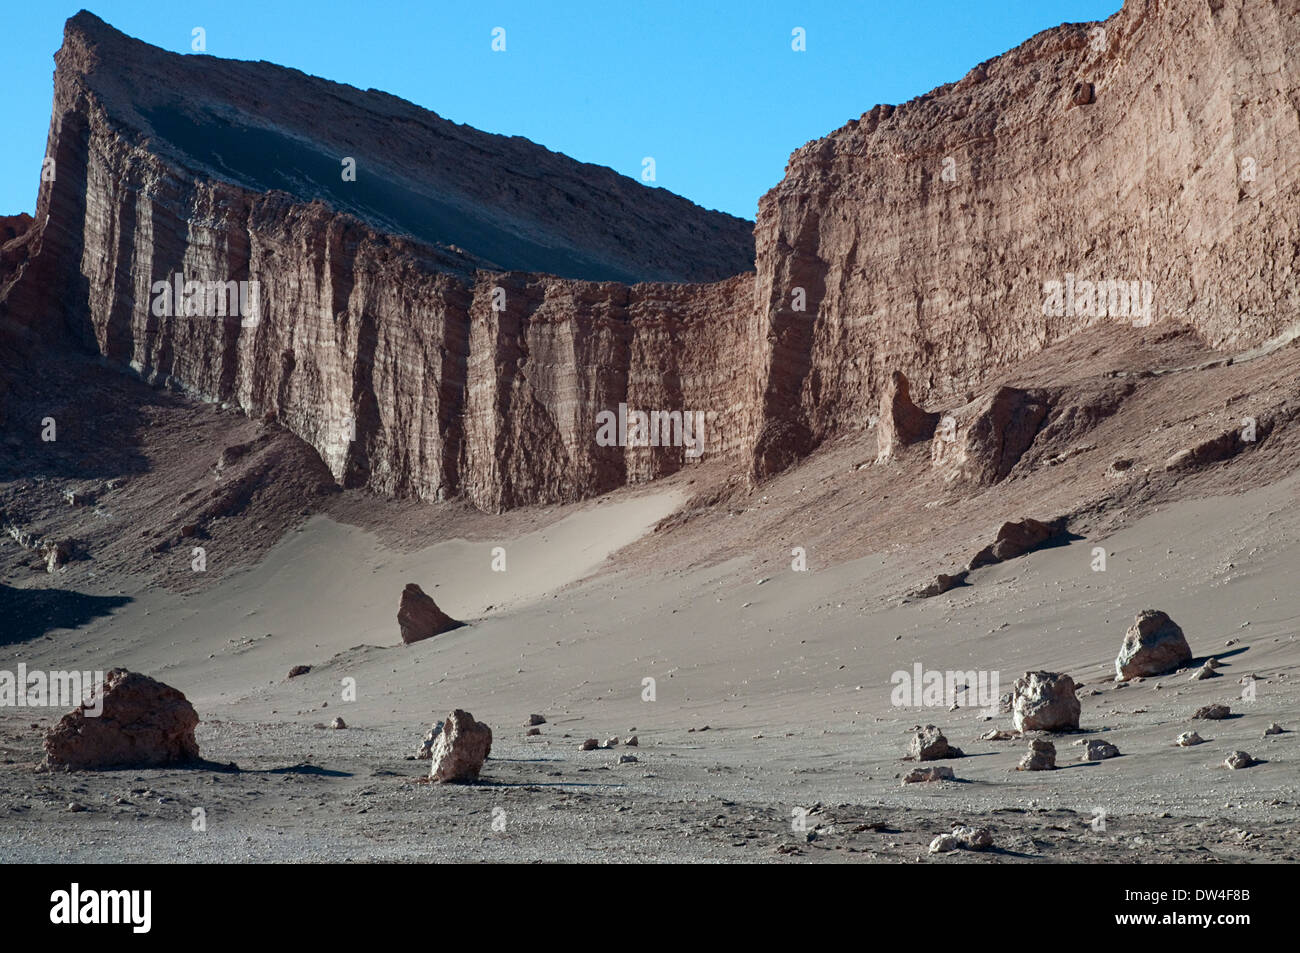 The Amphitheatre in the Valley of the Moon, Los Flamencos National Reserve, San Pedro de Atacama, Chile, South America - Stock Image